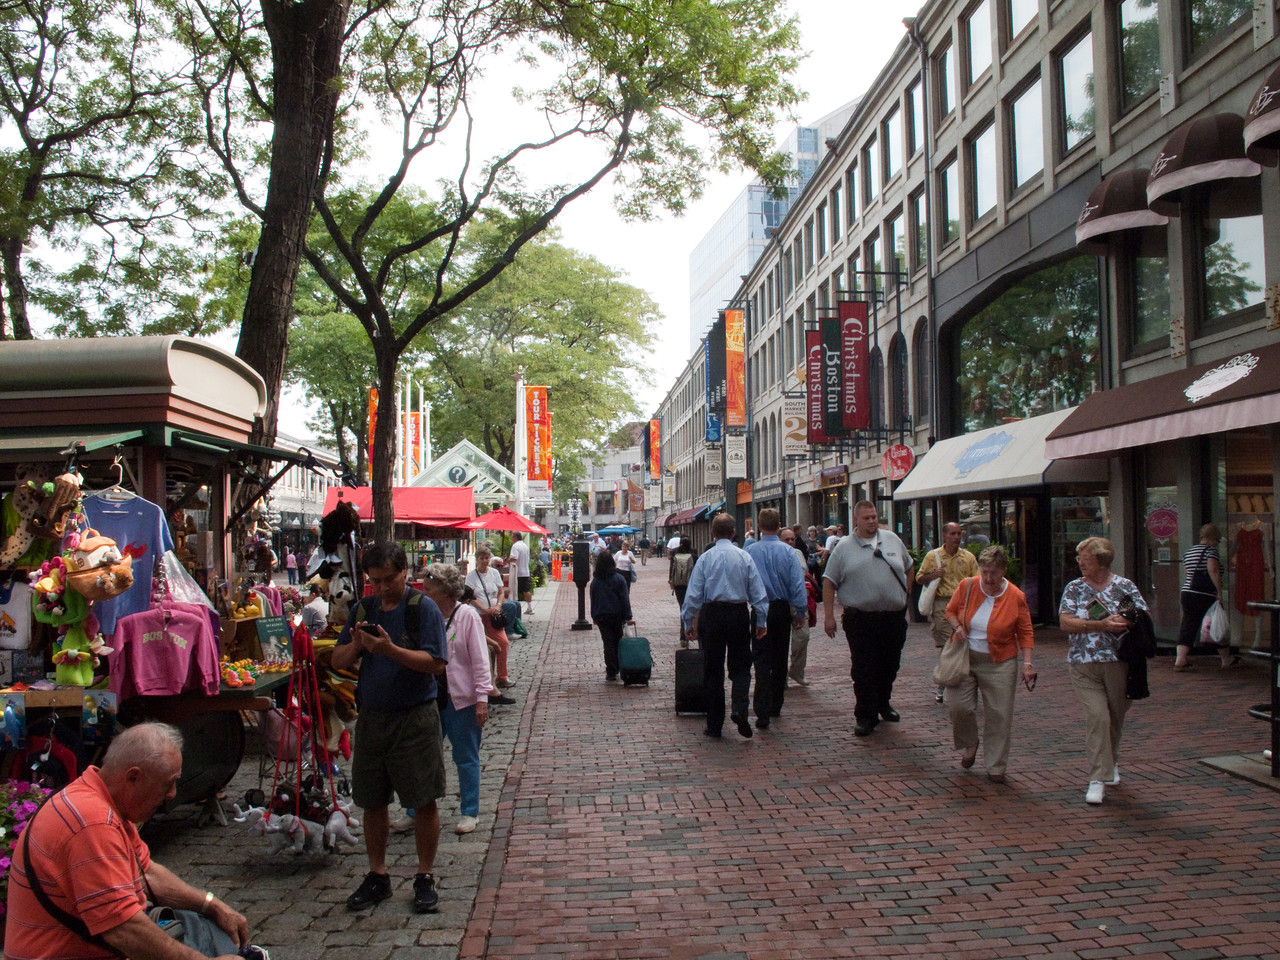 Quincy Market in Boston.  Tourist and shoppers pandemonium or ecstasy.